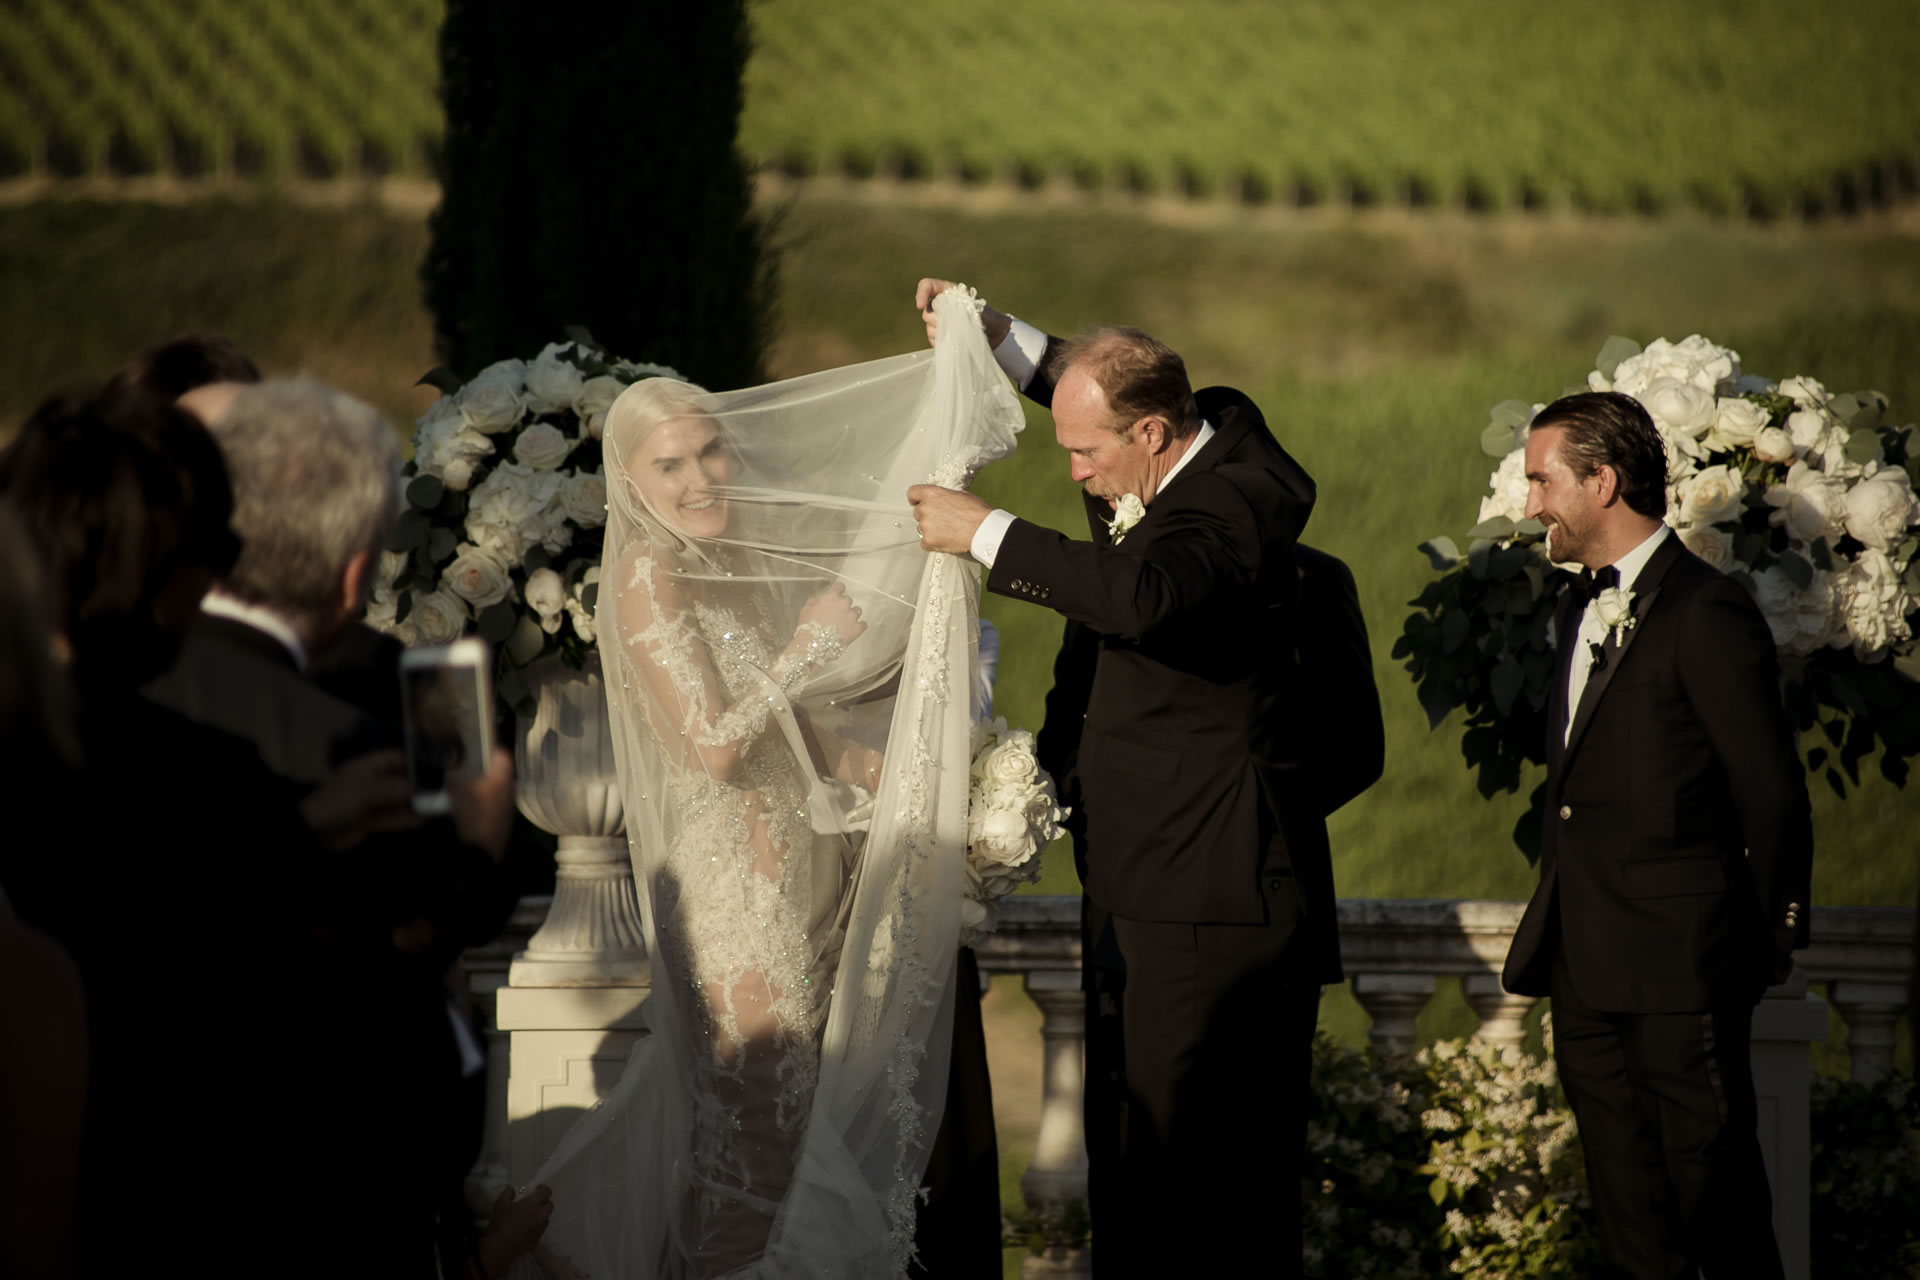 Laugh - 37 :: Exciting wedding in the countryside of Siena :: Luxury wedding photography - 36 :: Laugh - 37